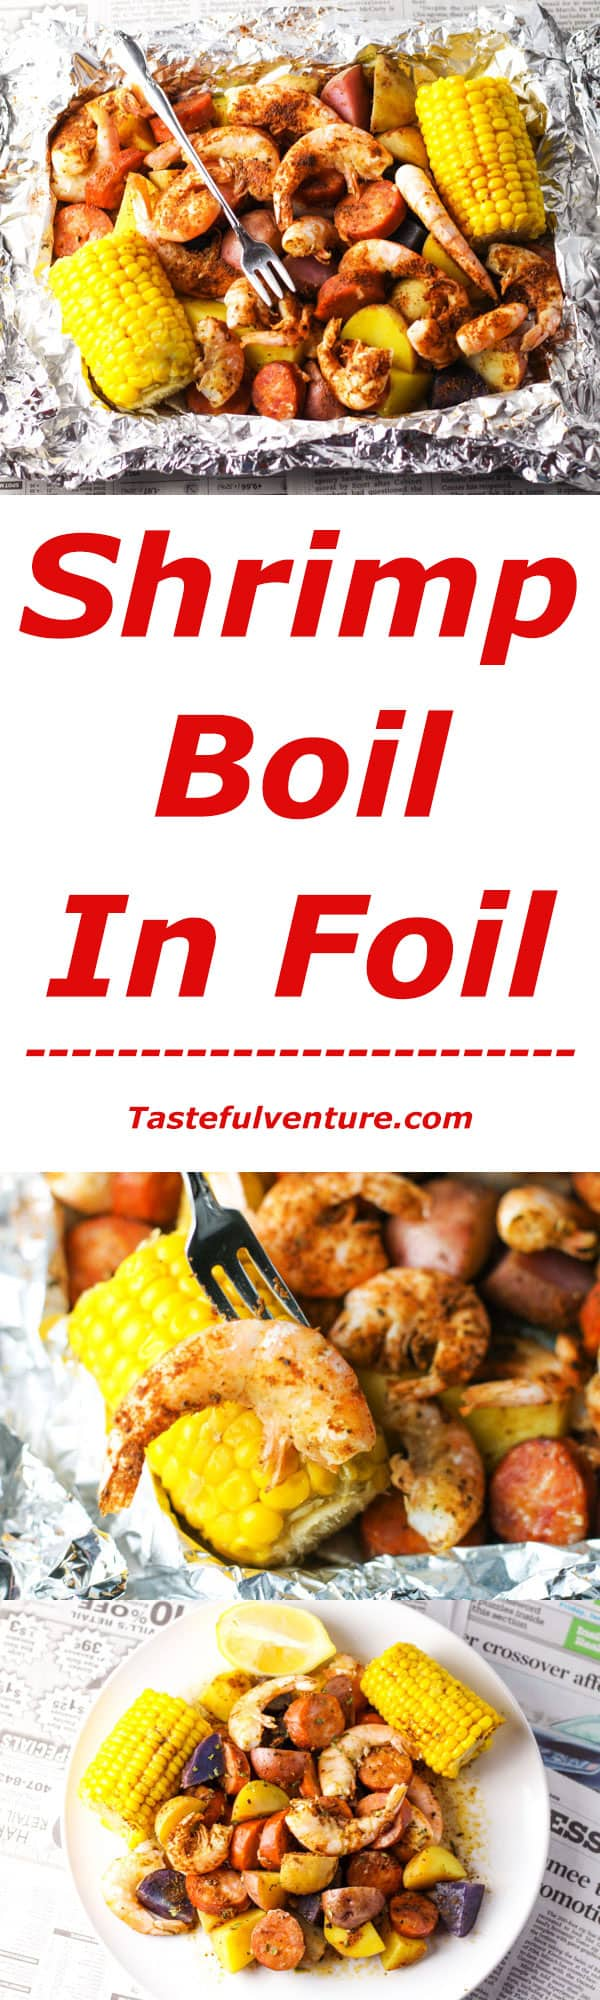 This Shrimp Boil in Foil is super easy to make. Just put everything in the foil, wrap it up, and bake it. This makes cleanup a breeze! | Tastefulventure.com